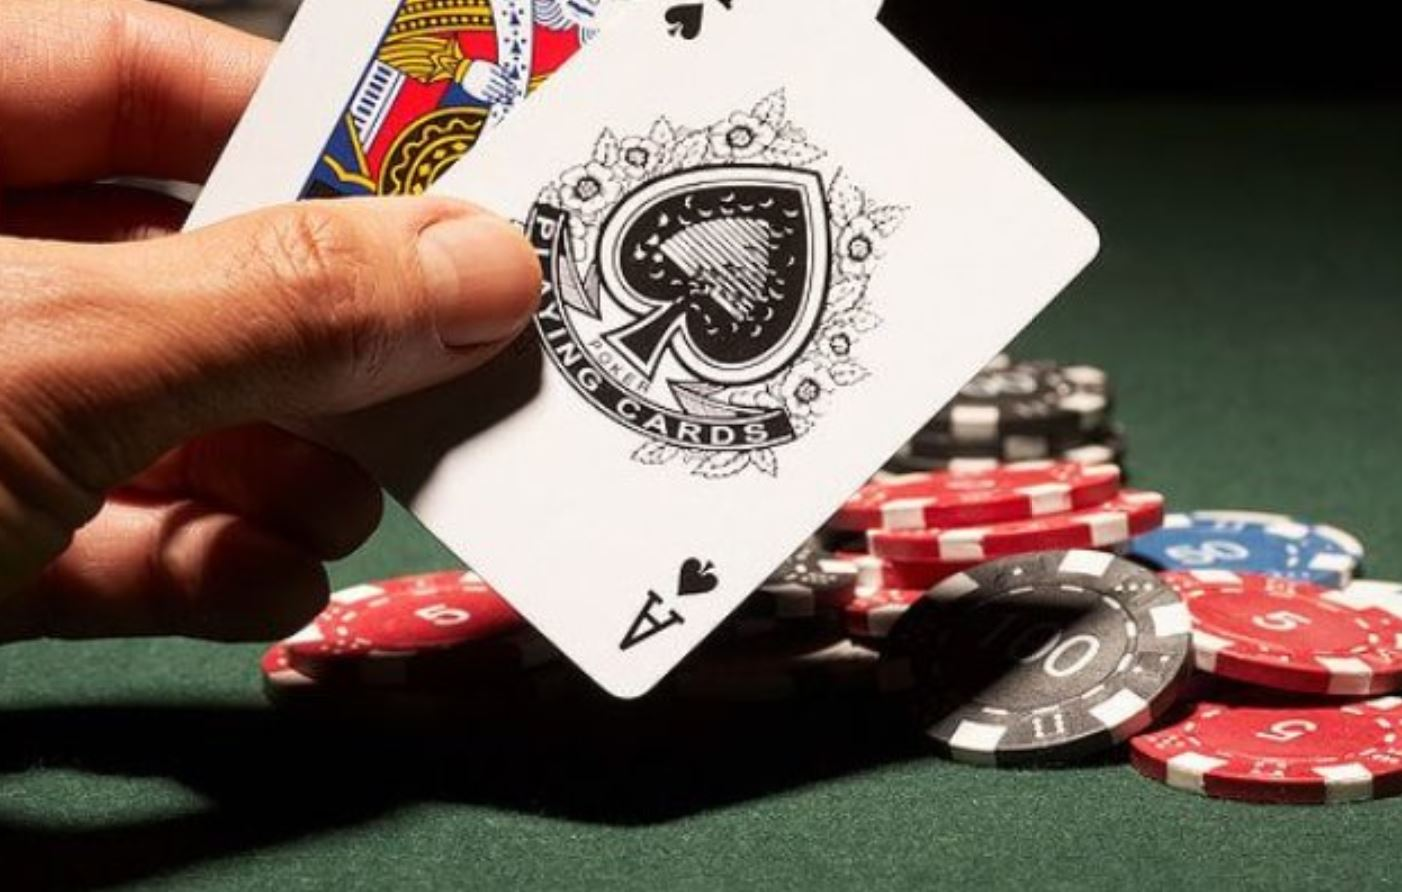 How to learn to play blackjack? A few simple yet effective tips